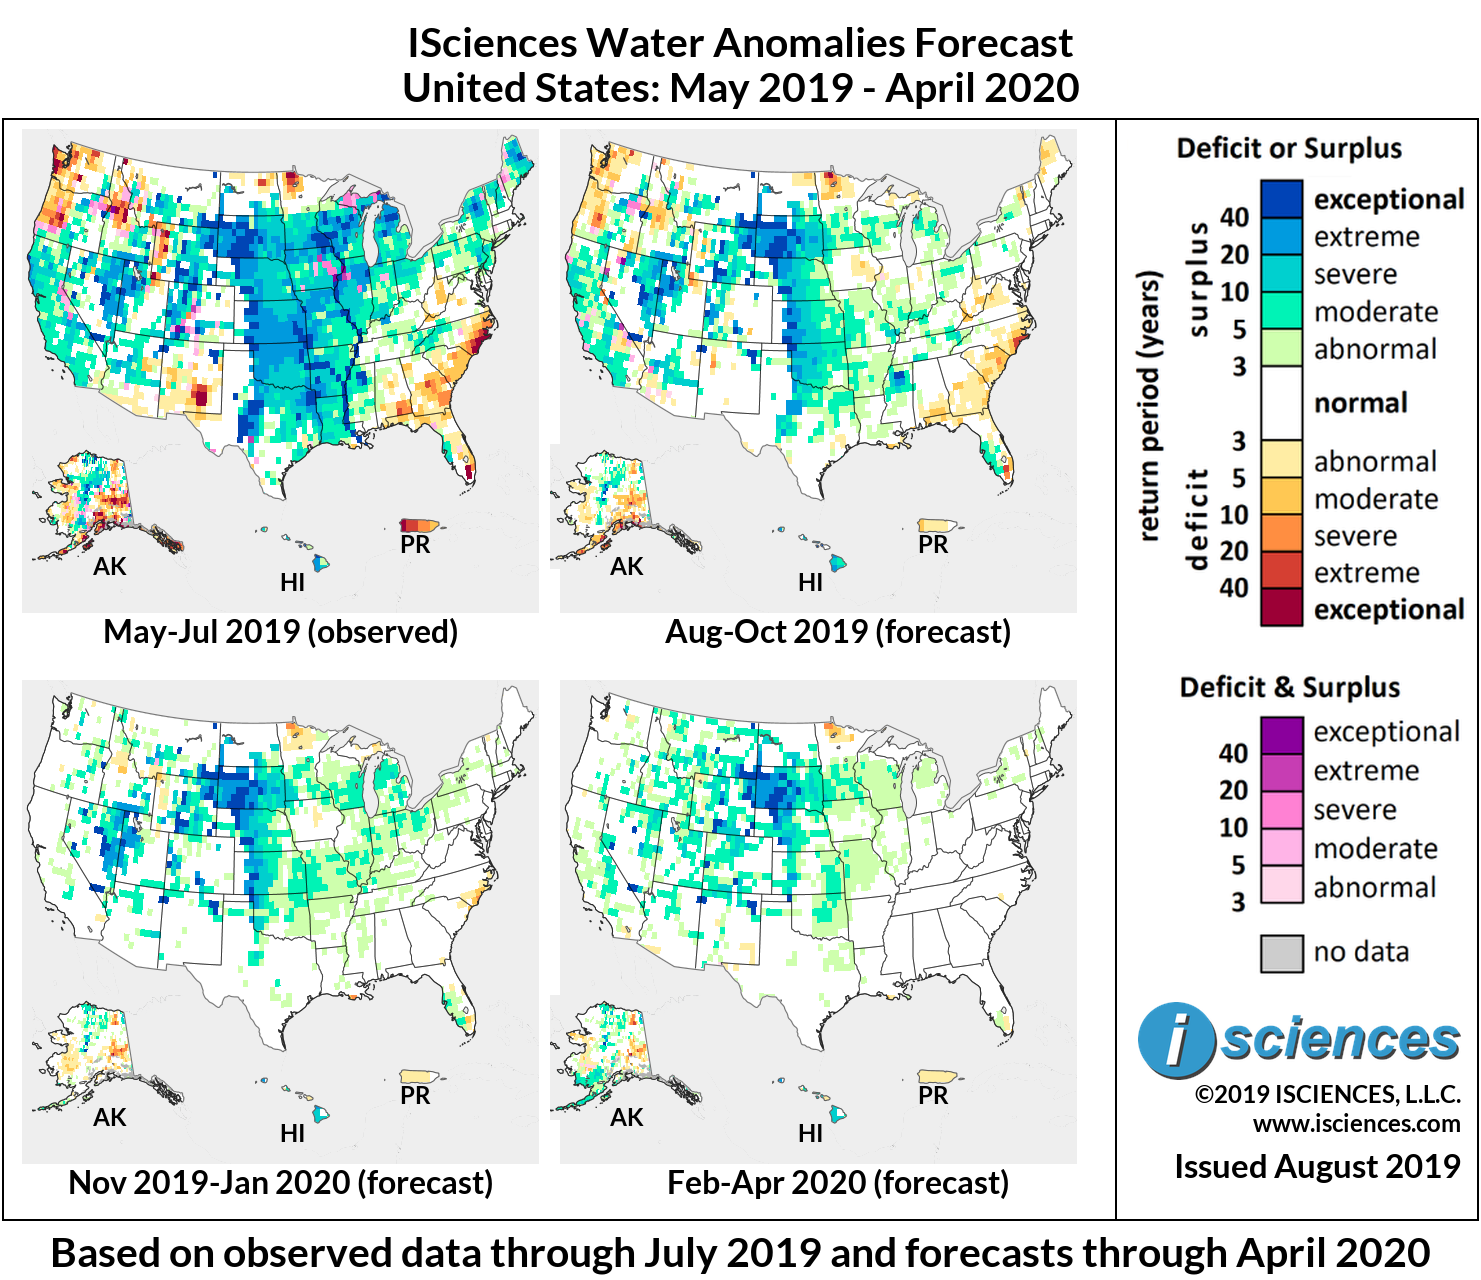 ISciences_United_States_Composite_Adjusted_201905-202004_3mo_panel.png